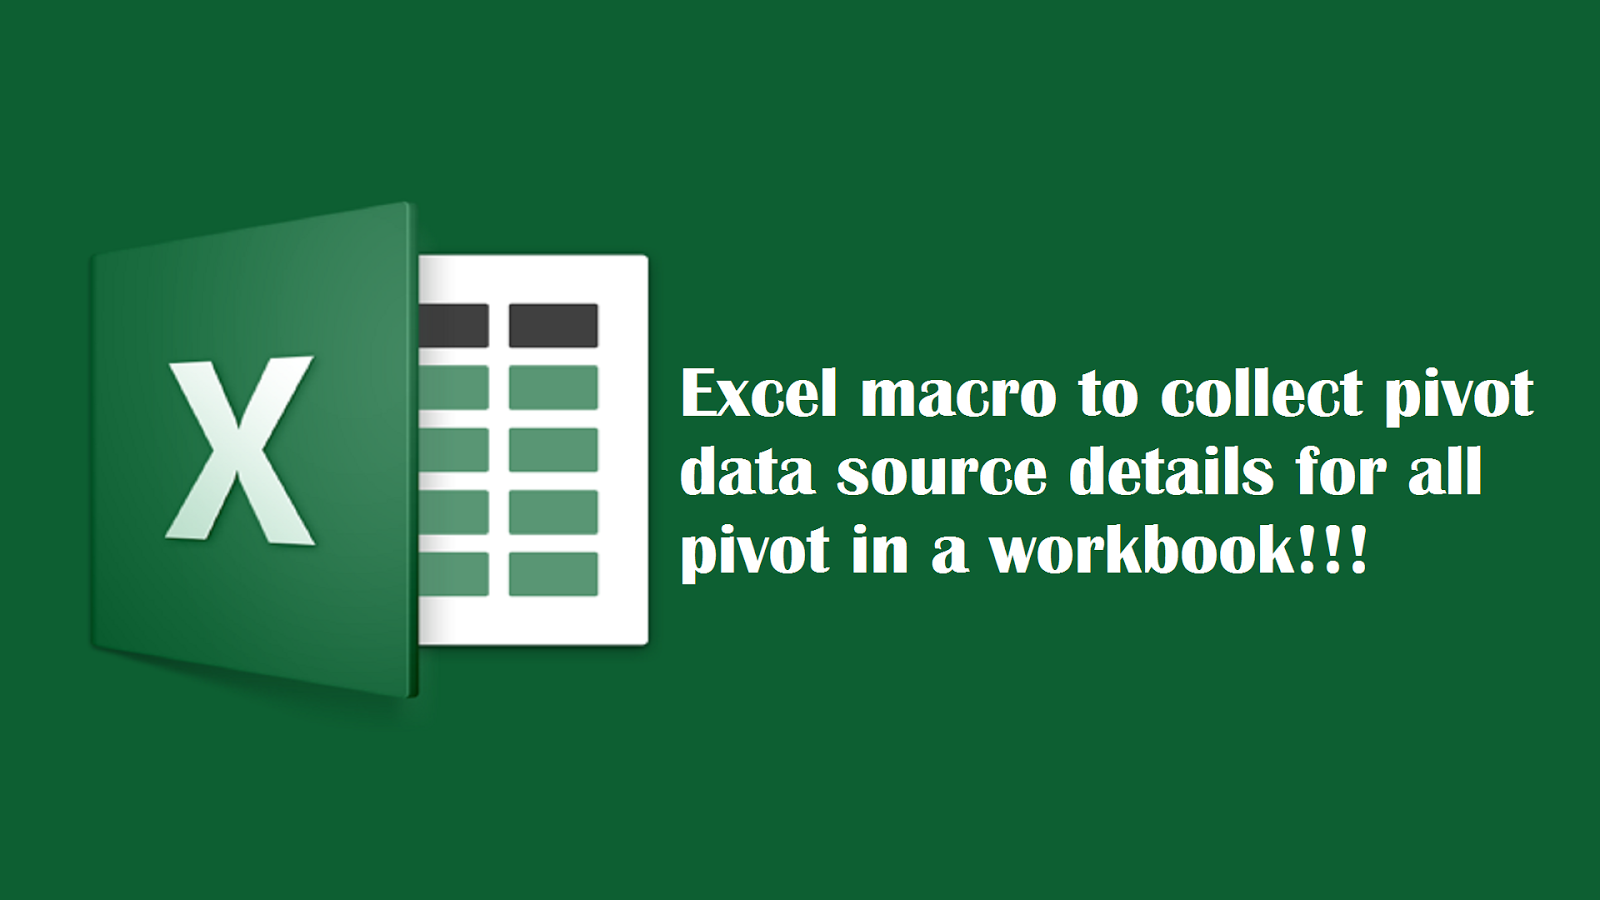 Vba Tricks And Tips Excel Macro To Collect Pivot Data